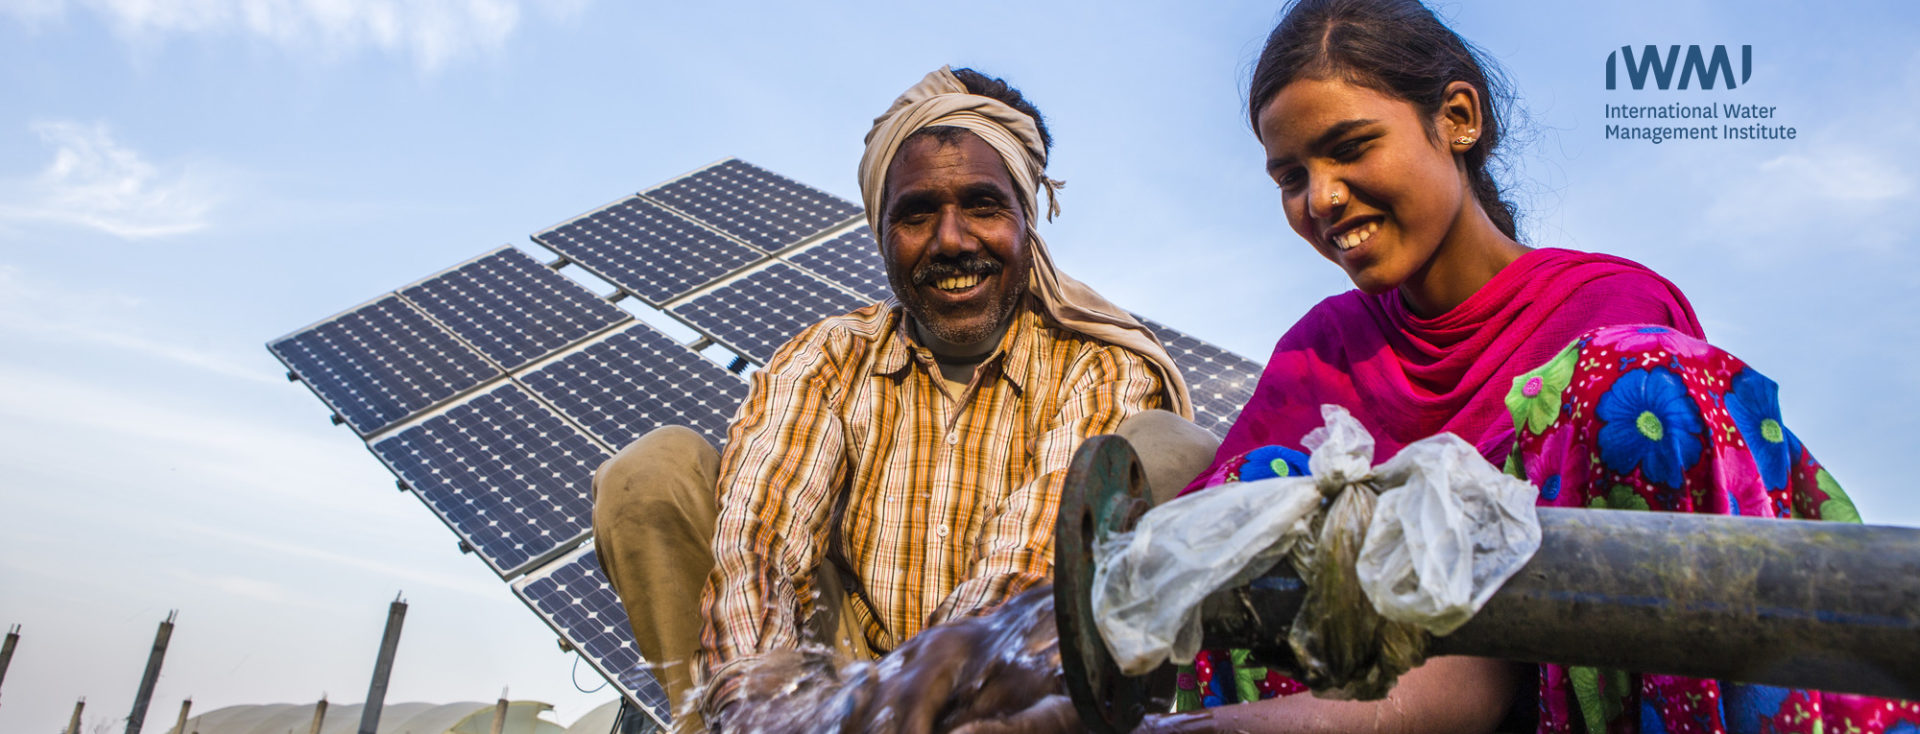 Solar Irrigation for Agricultural Resilience (SoLAR)